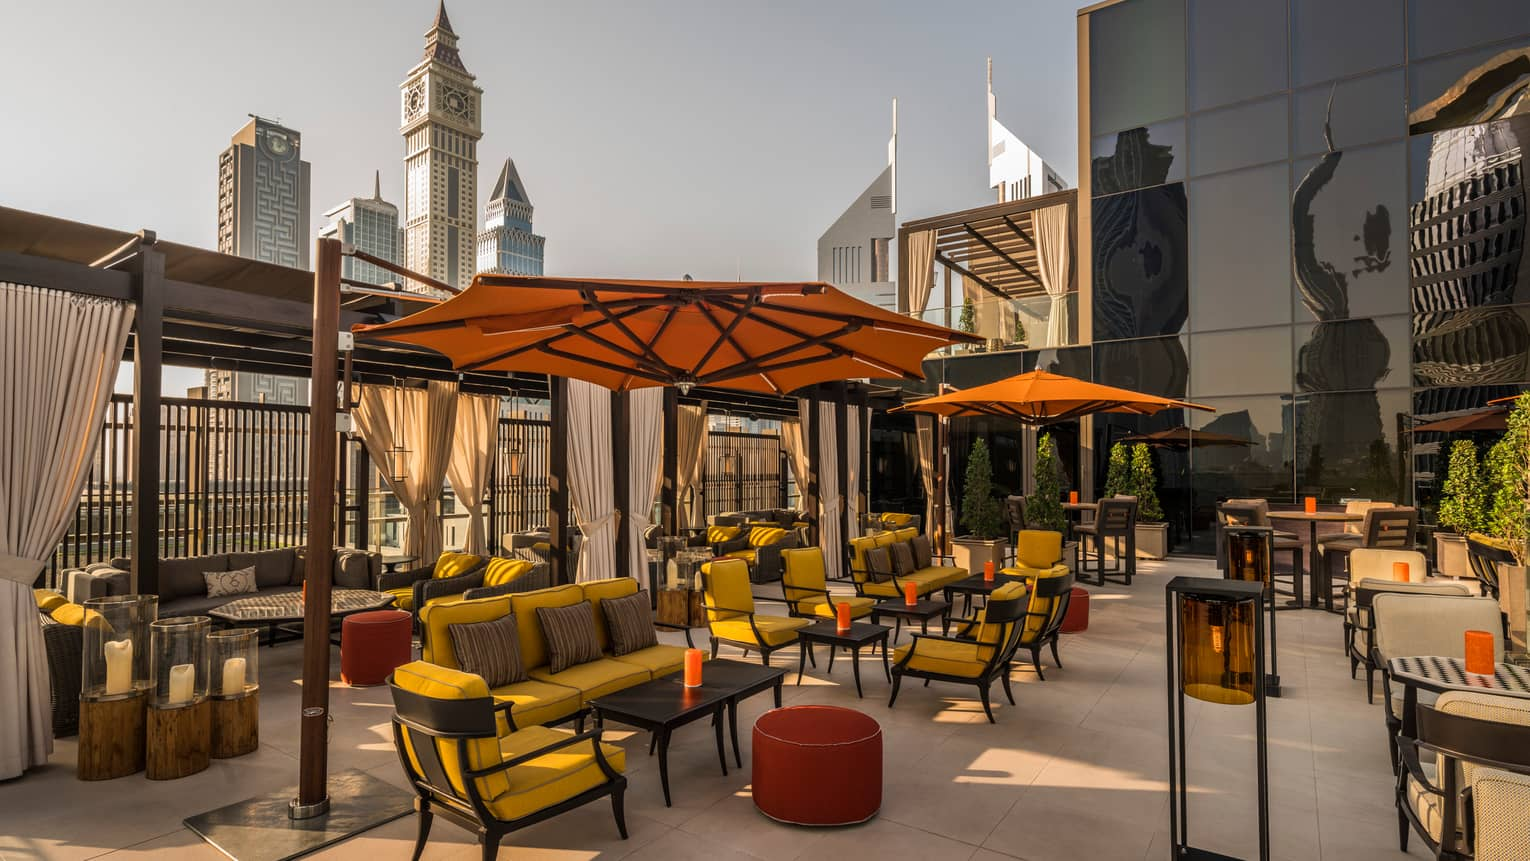 Rooftop patio with plush yellow patio furniture, large orange umbrellas, wood pergolas, city skyline in background